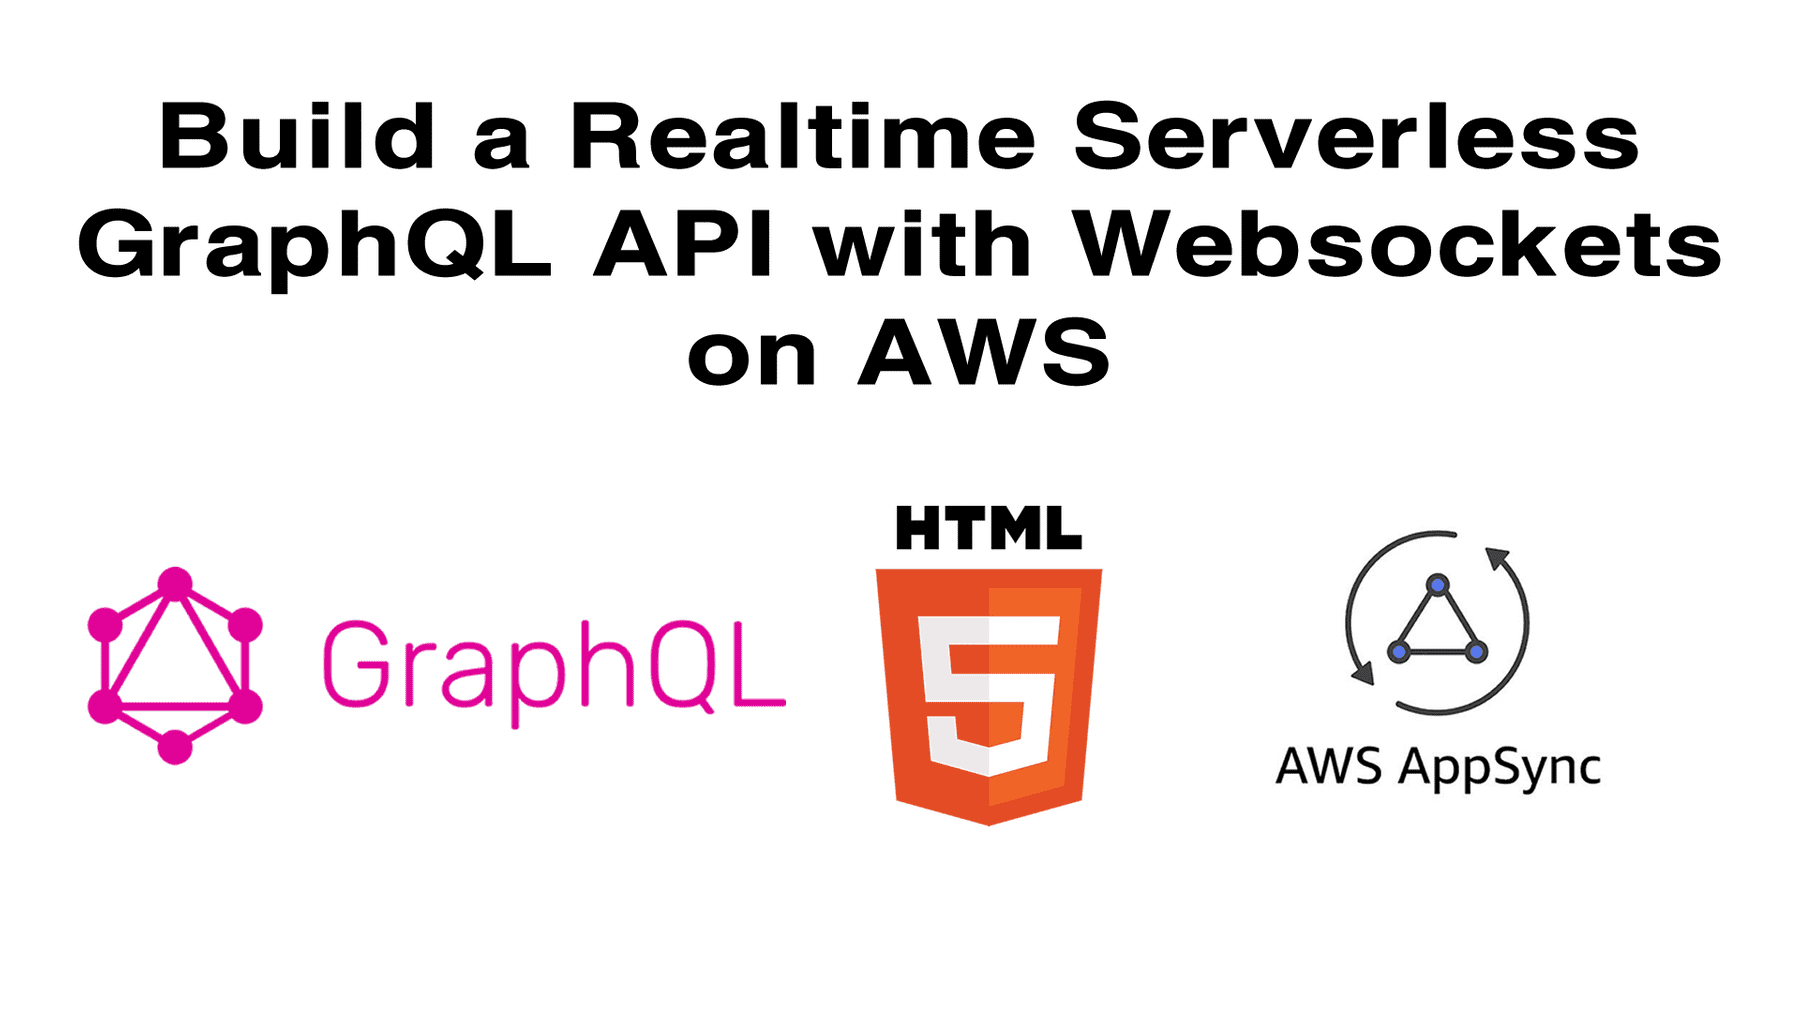 Build a Realtime Serverless GraphQL API with Websockets on